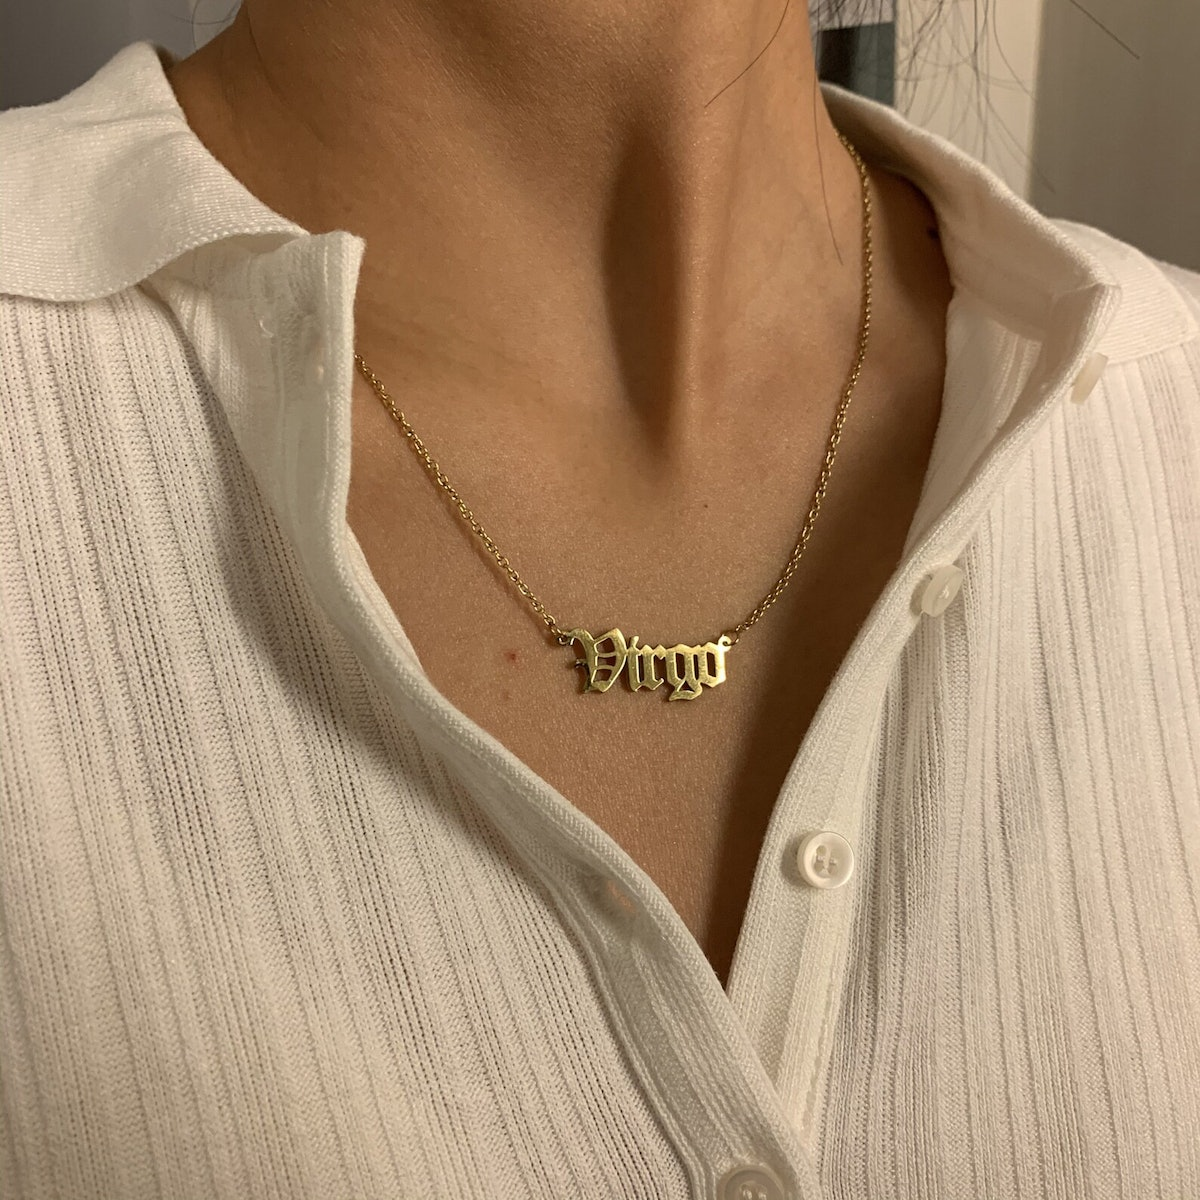 There are tons of virgo necklaces featuring dainty, cute designs to give to the virgo in your life